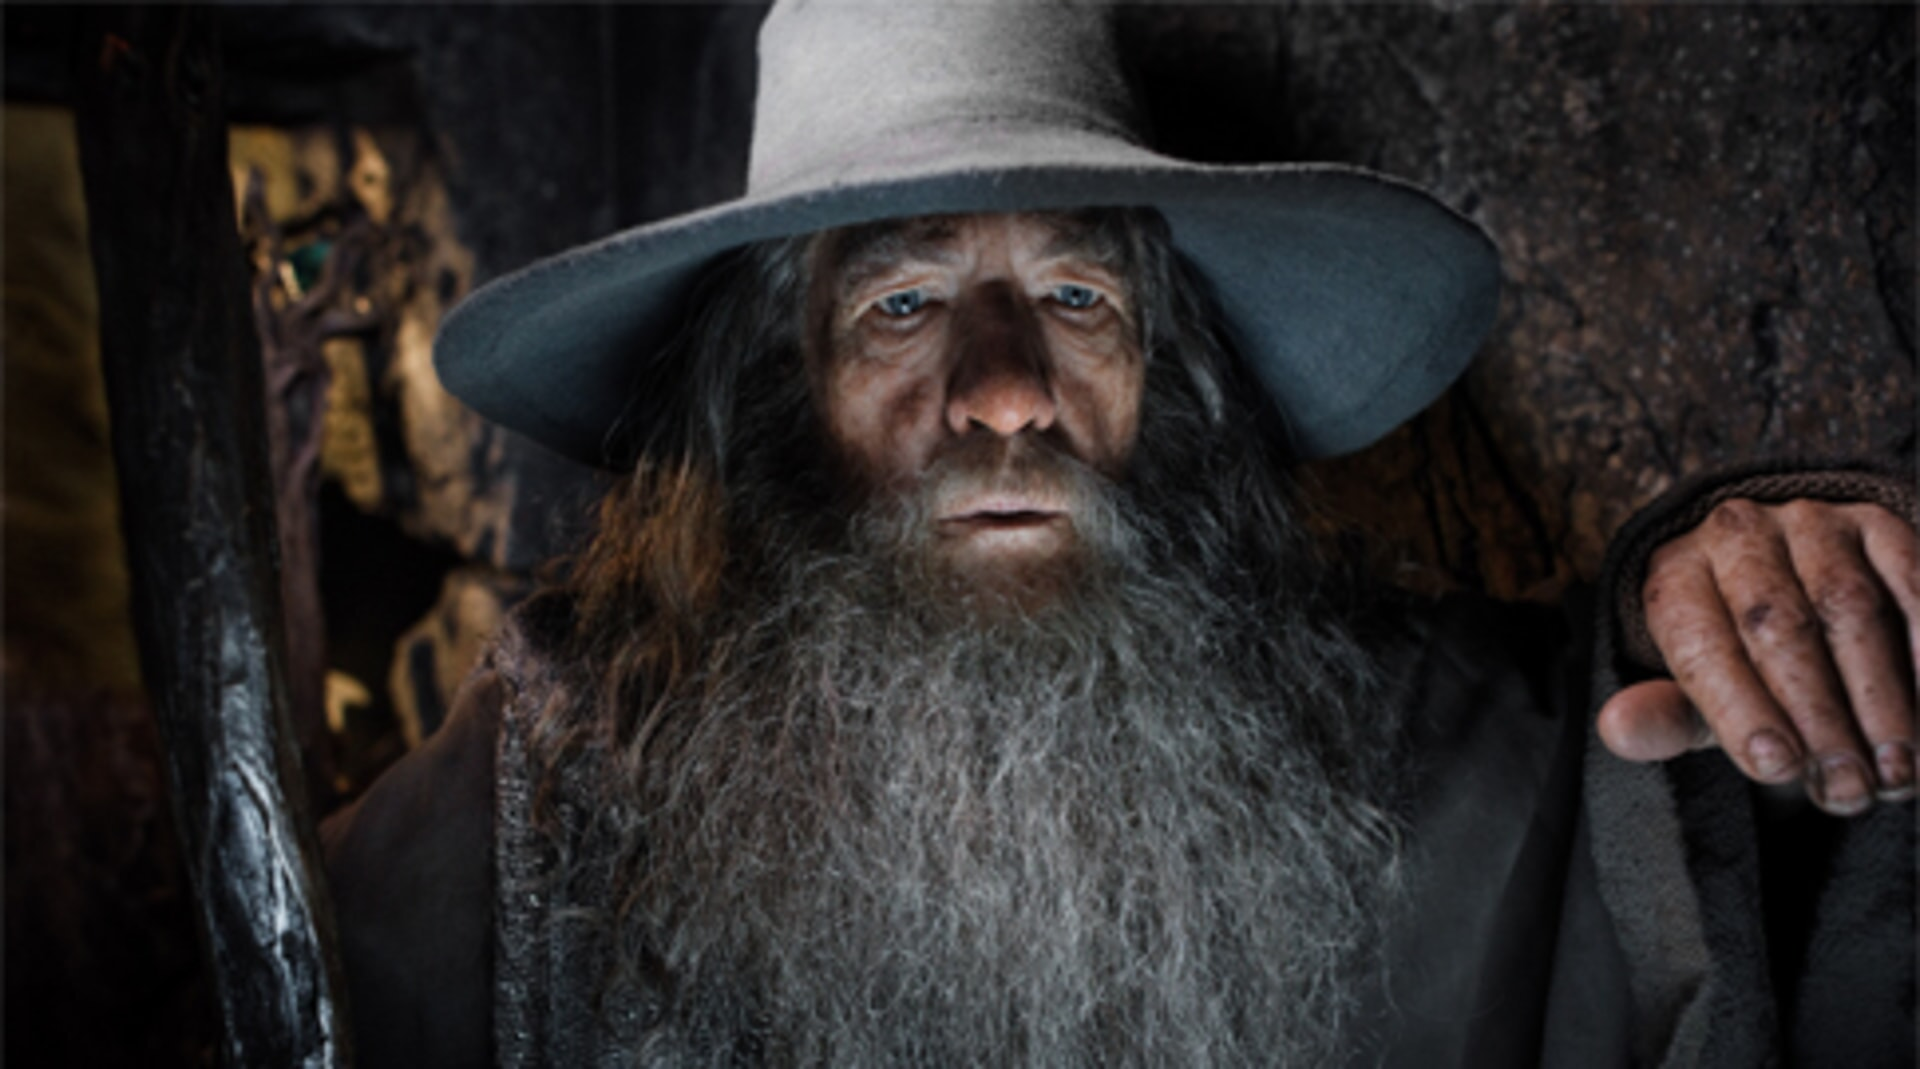 The Hobbit: The Desolation of Smaug - Image 29